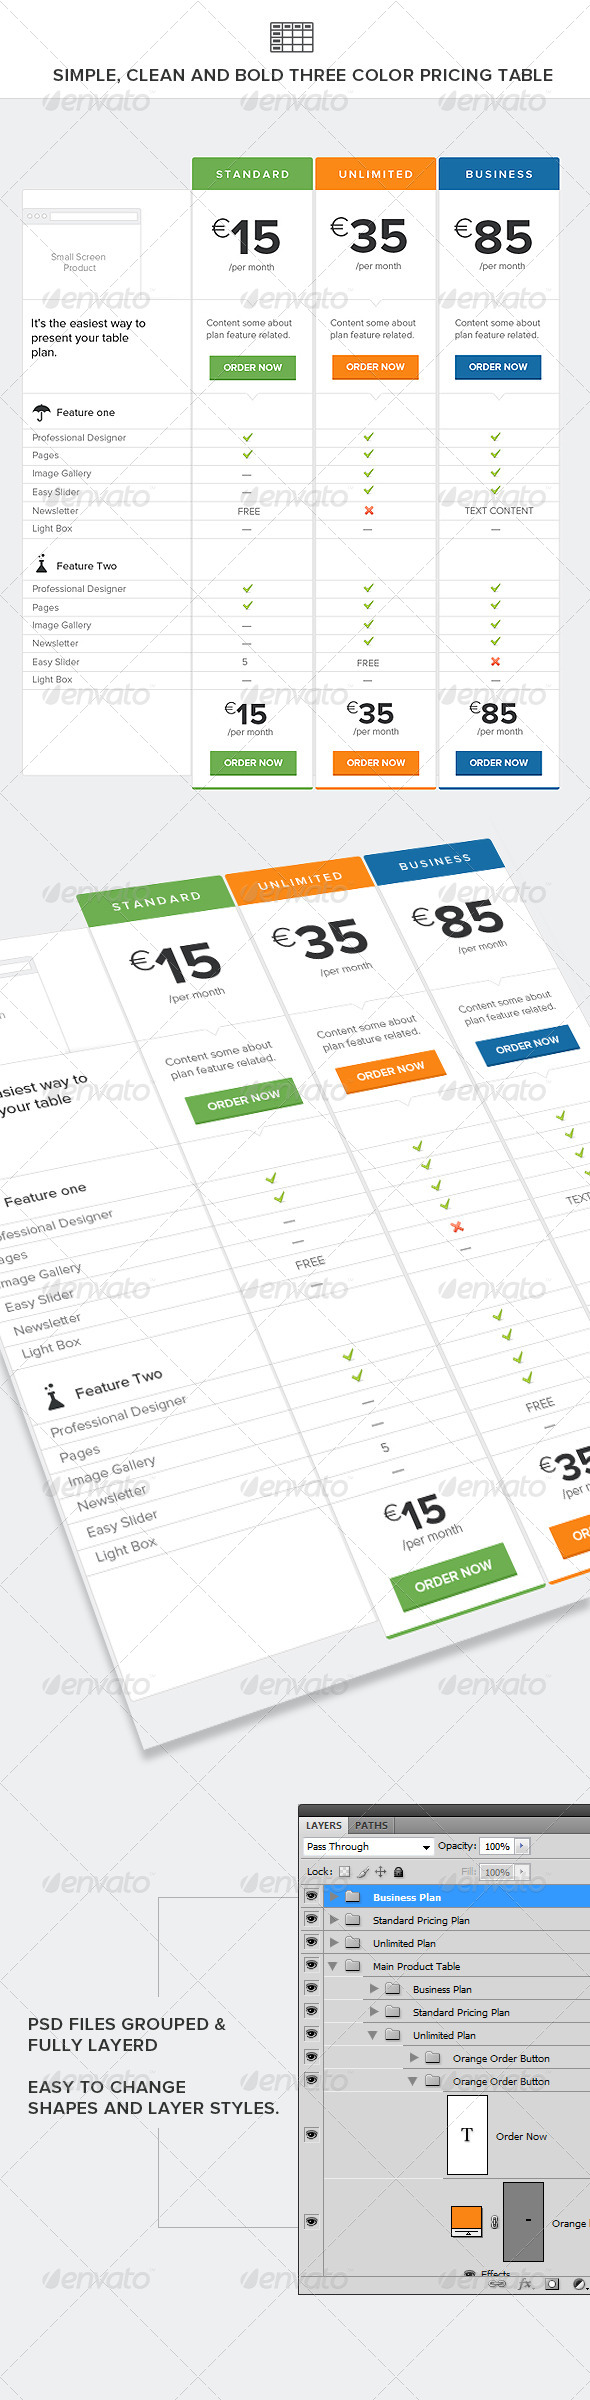 Simple, Clean and Bold Three Color Pricing Table - Tables Web Elements